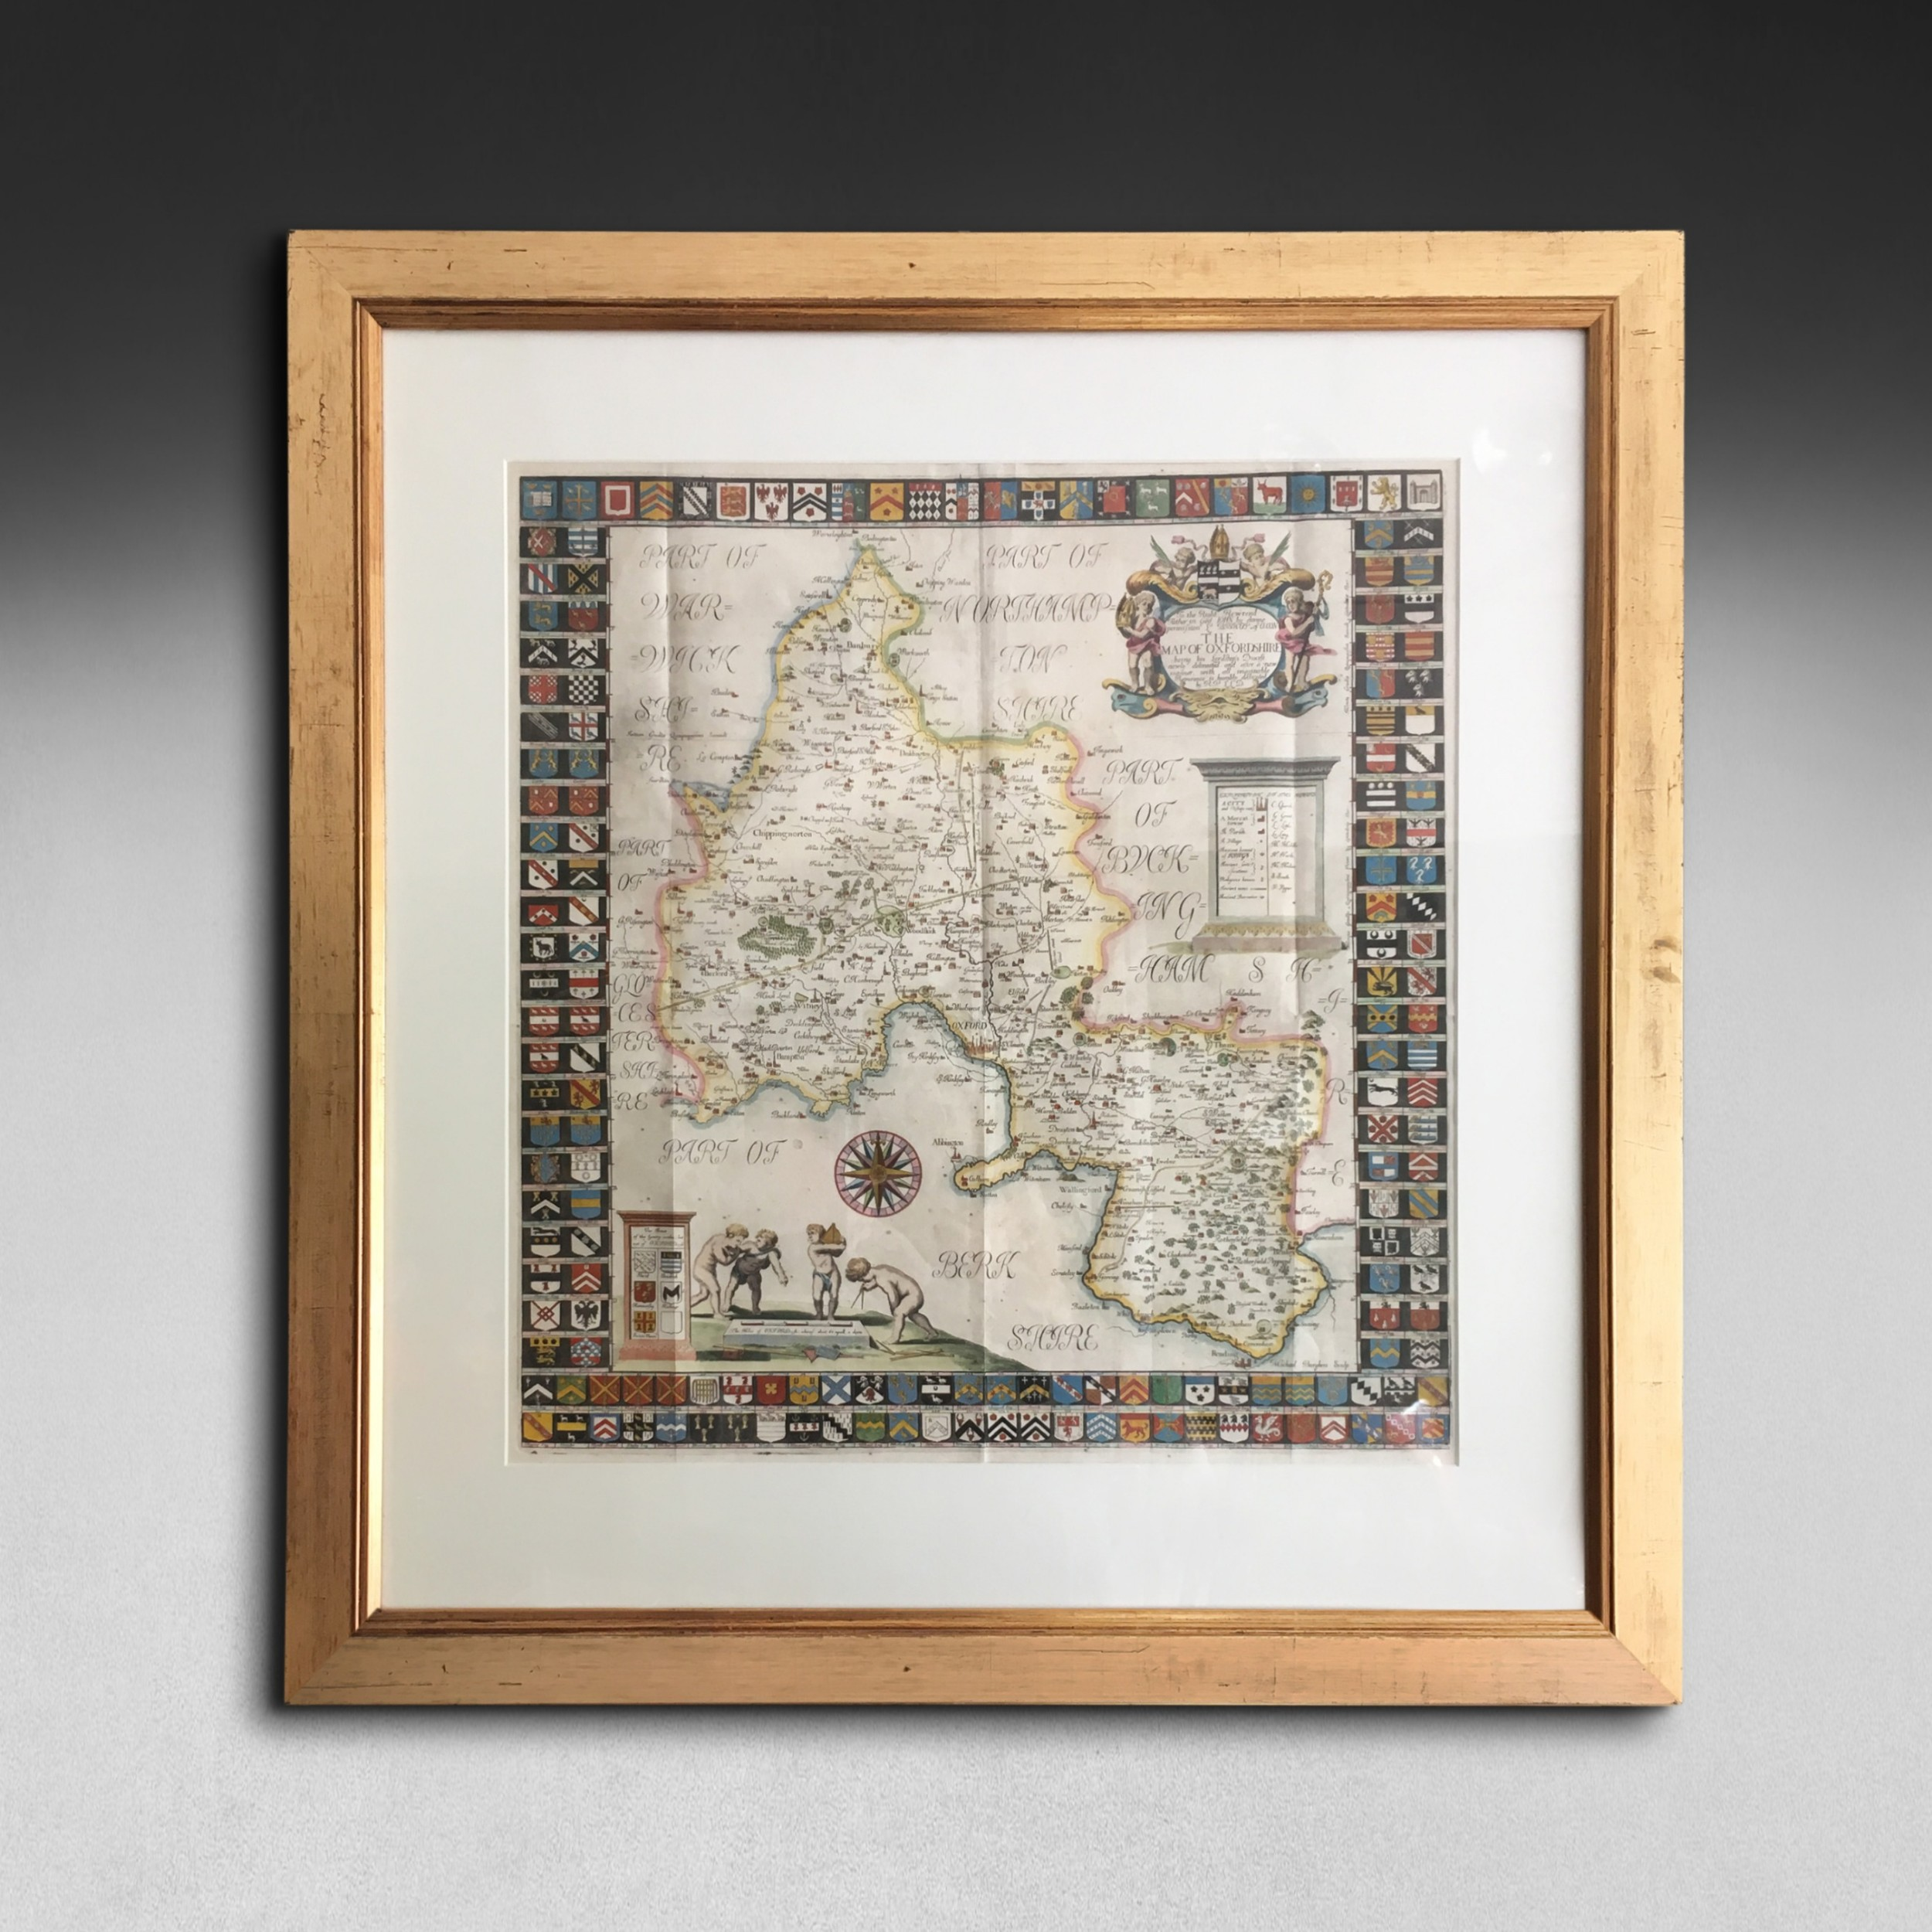 hand coloured engraved map of oxfordshire by robert plot